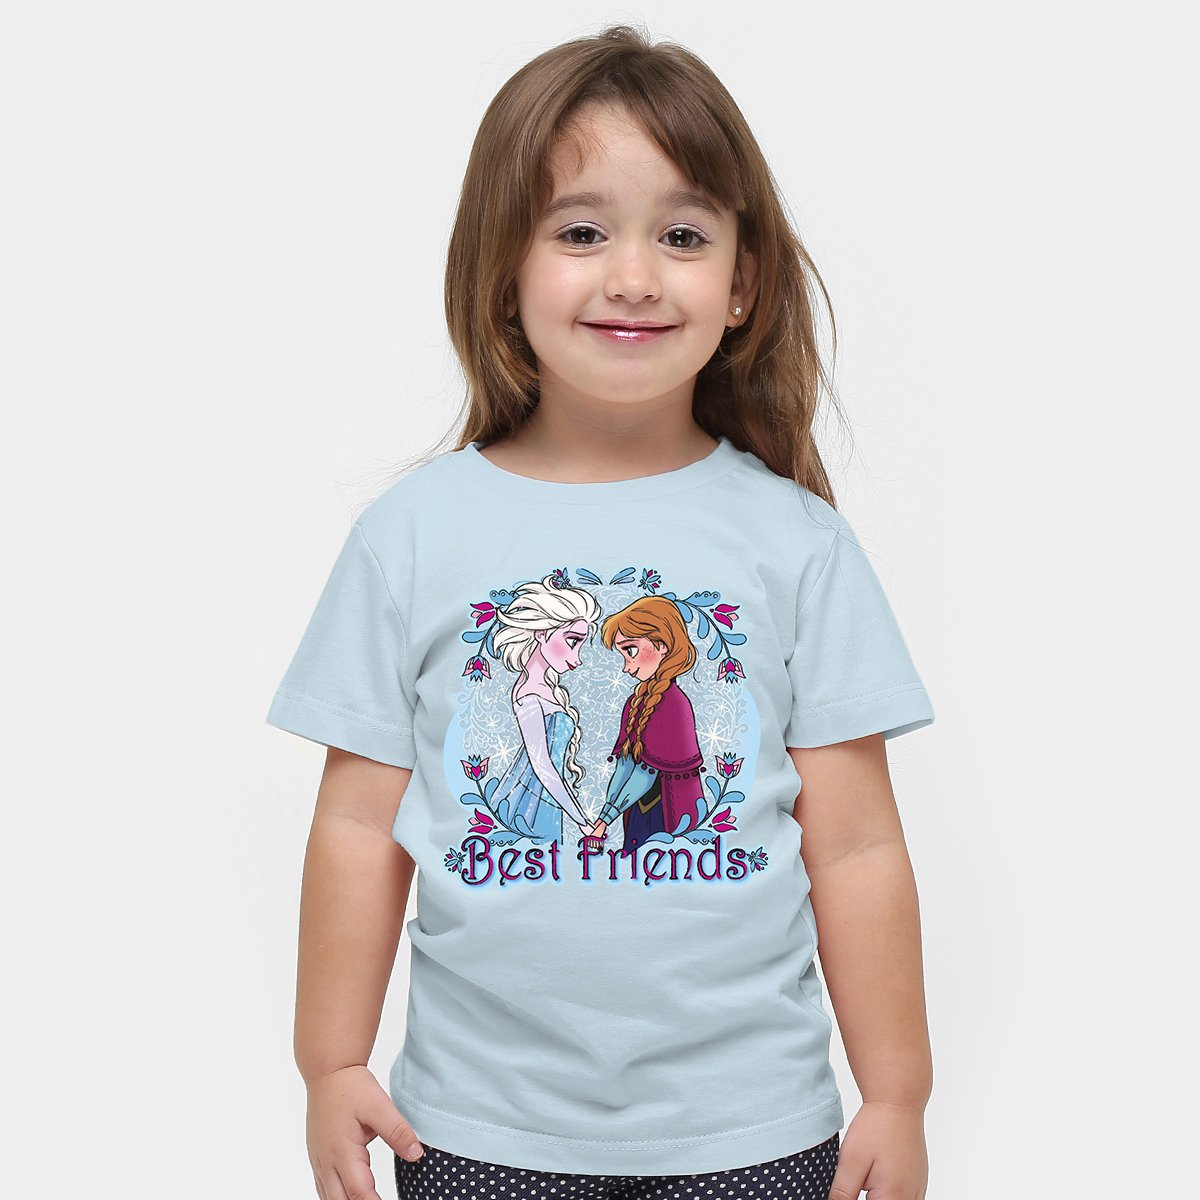 Best Azul Camiseta Frozen Camiseta Friends Frozen X7twvaqnxx